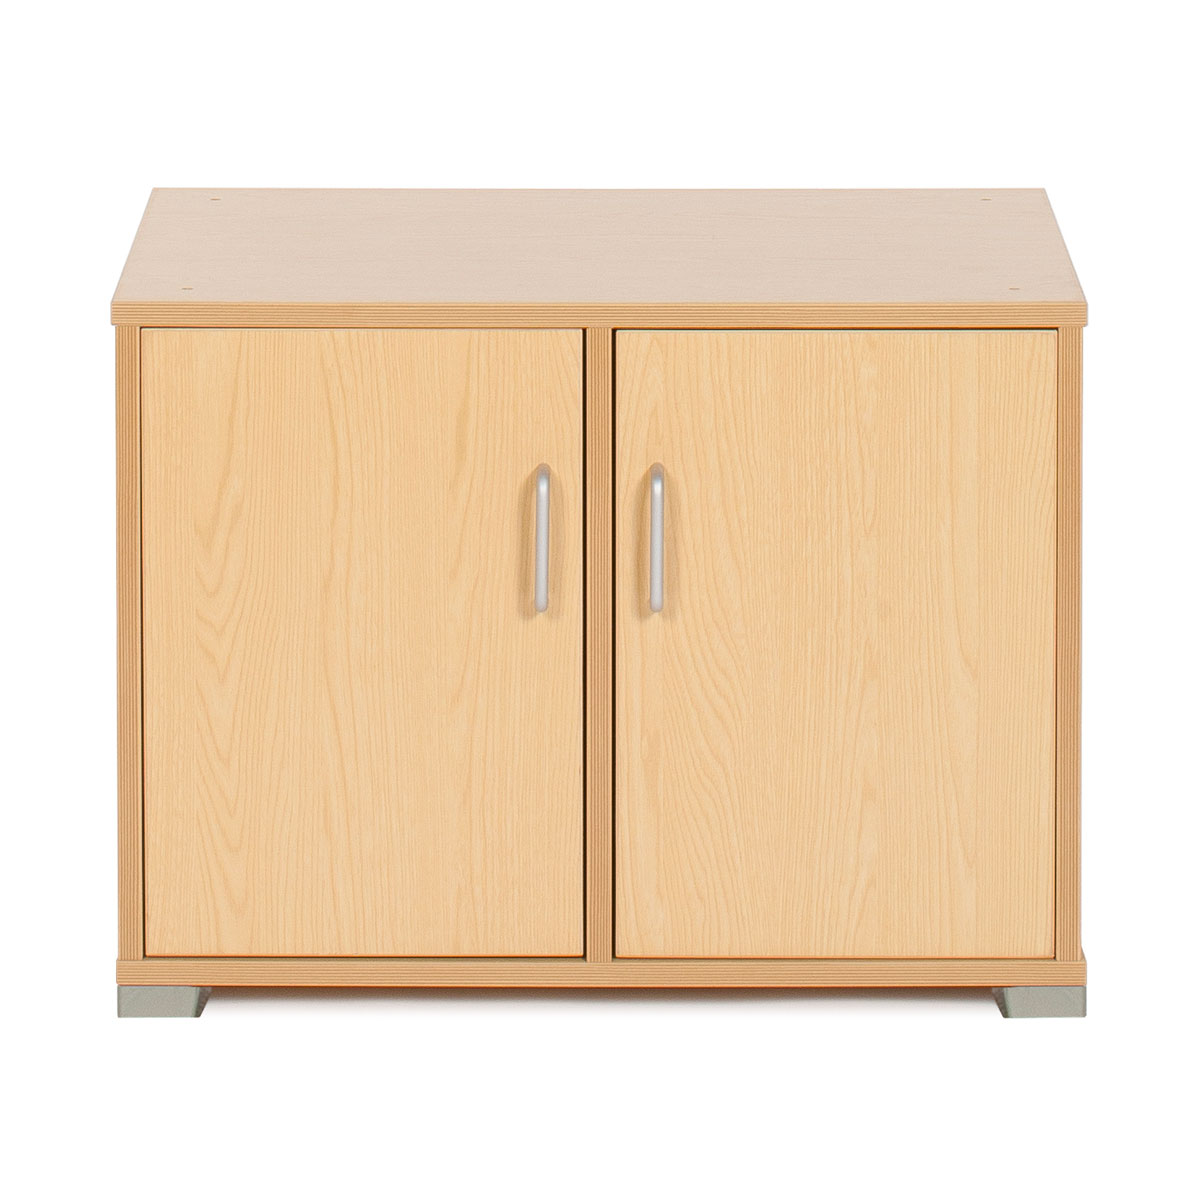 Buy Cupboard Buy Bubblegum 2 Bay Low Level Cupboard Primary Ict Shop